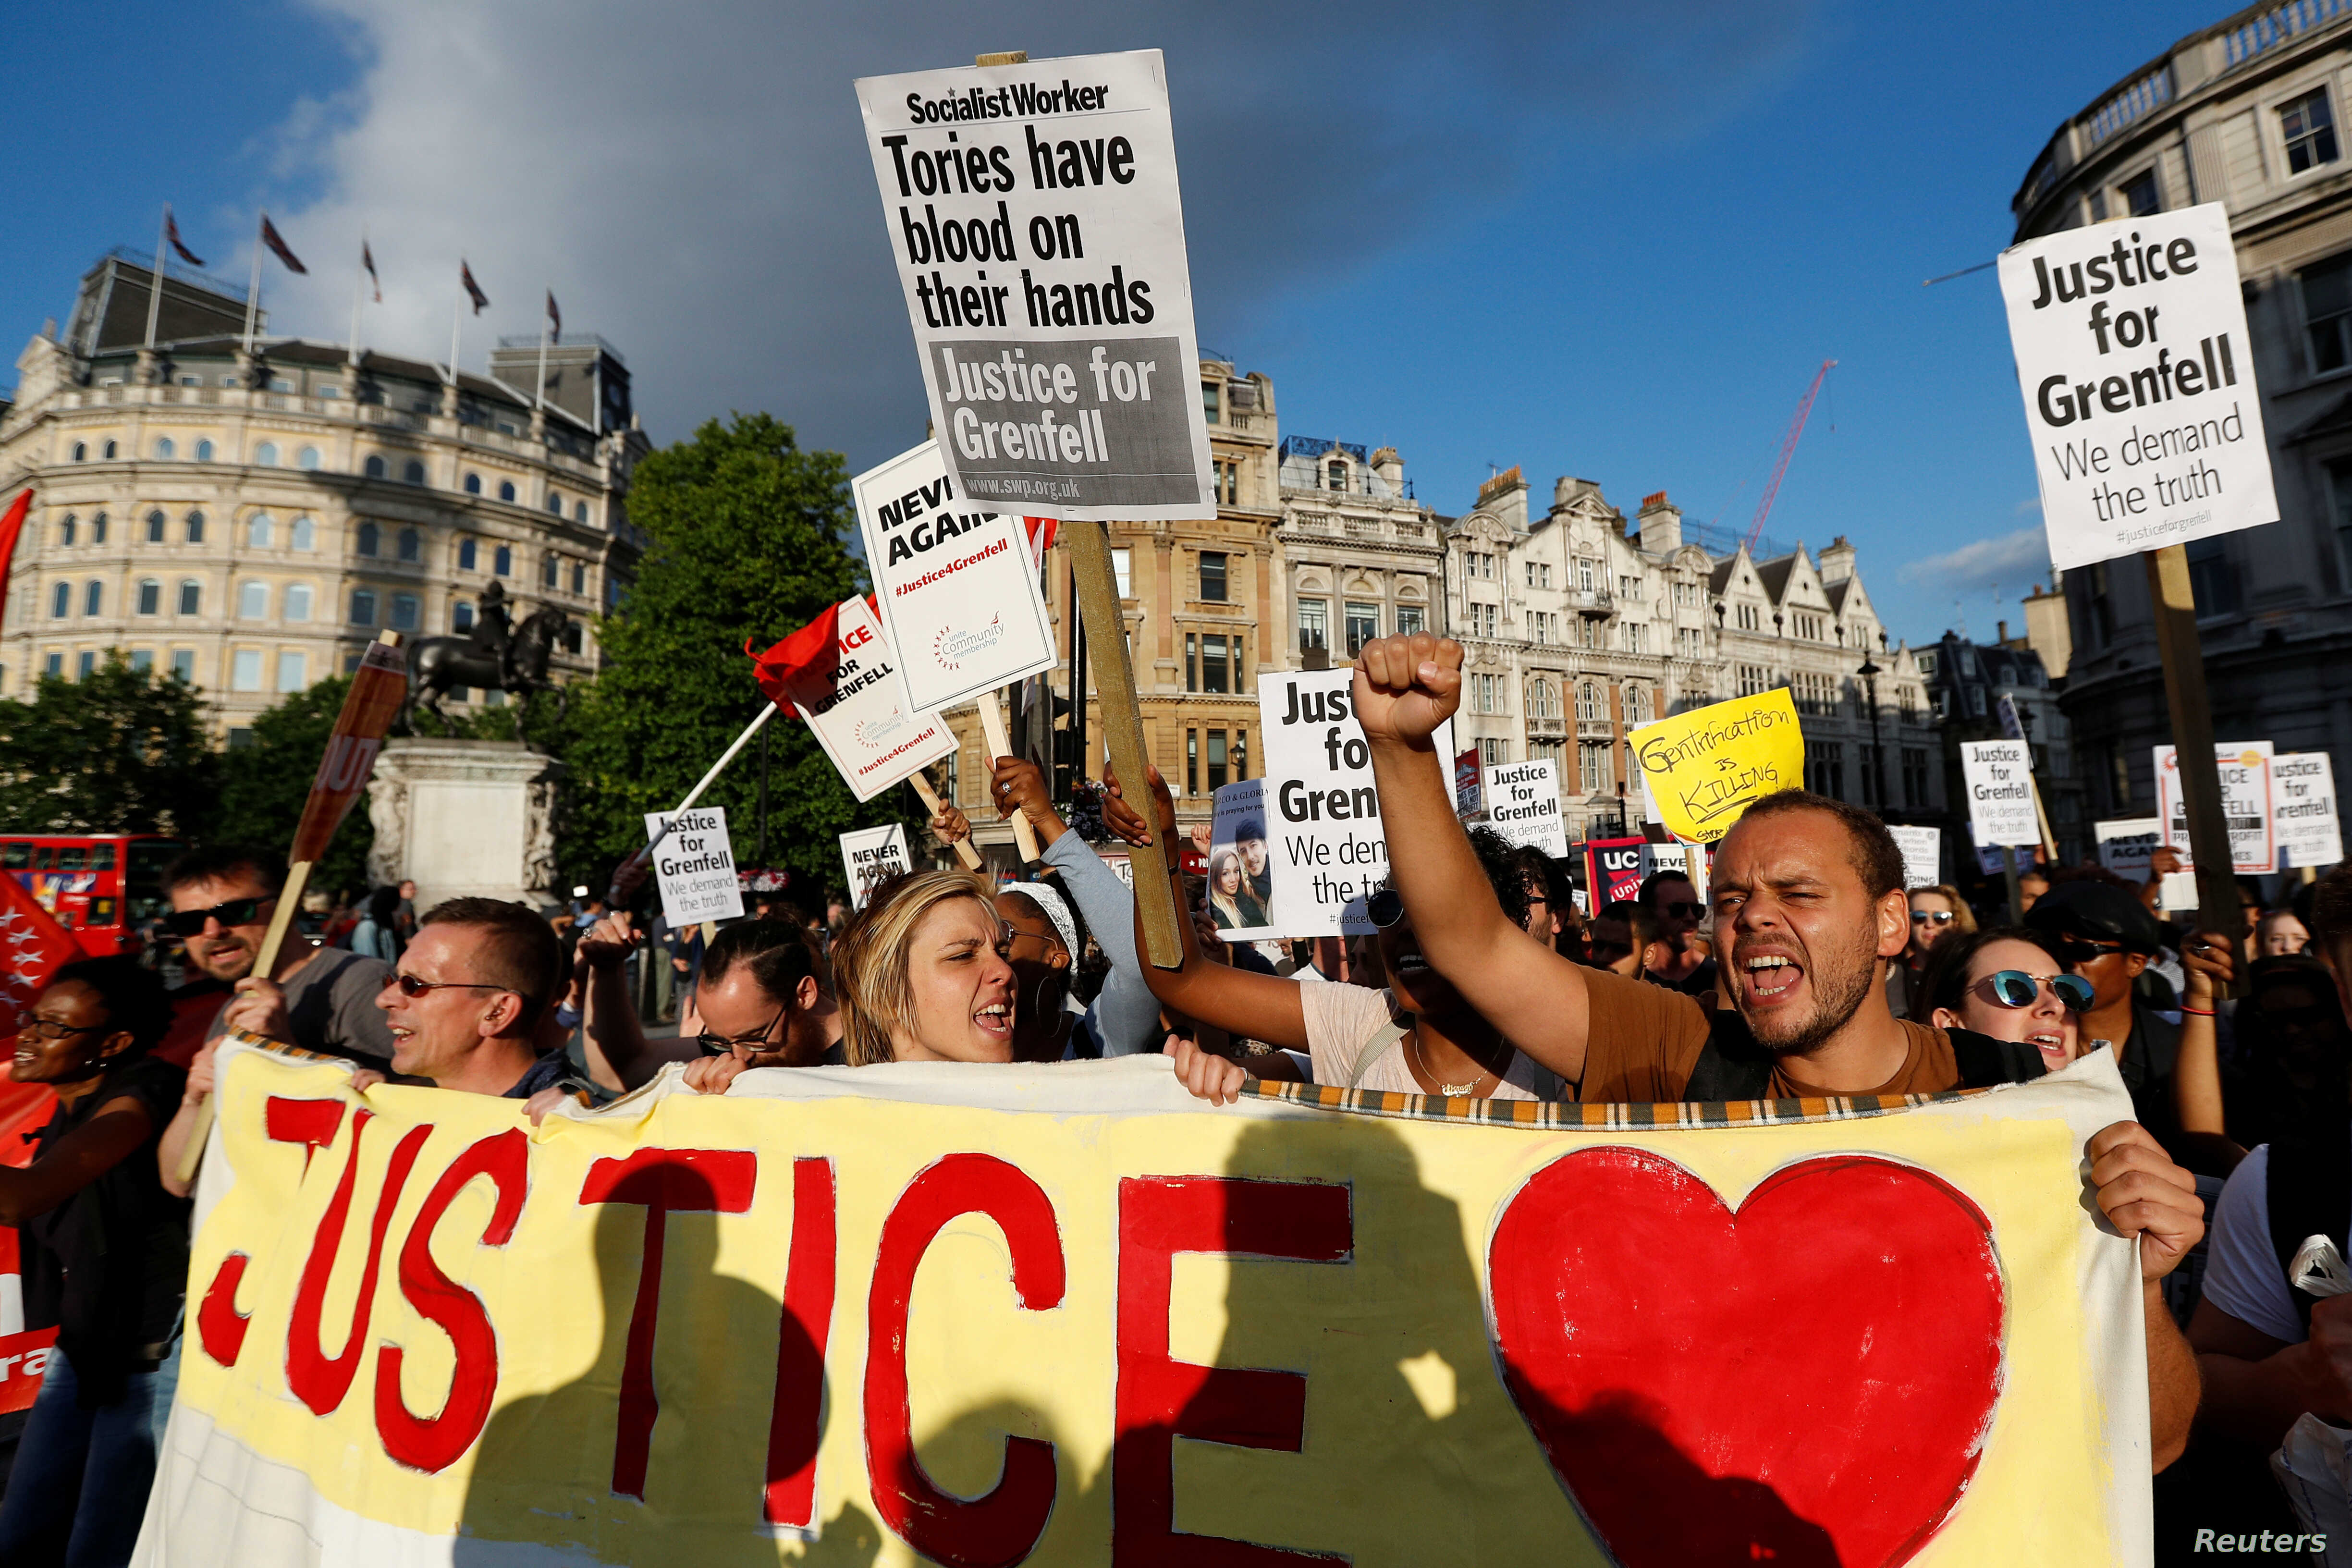 Demonstrators hold up banners during a march in Westminster, following the fire that destroyed The Grenfell Tower block, in north Kensington, West London, Britain, June 16, 2017.